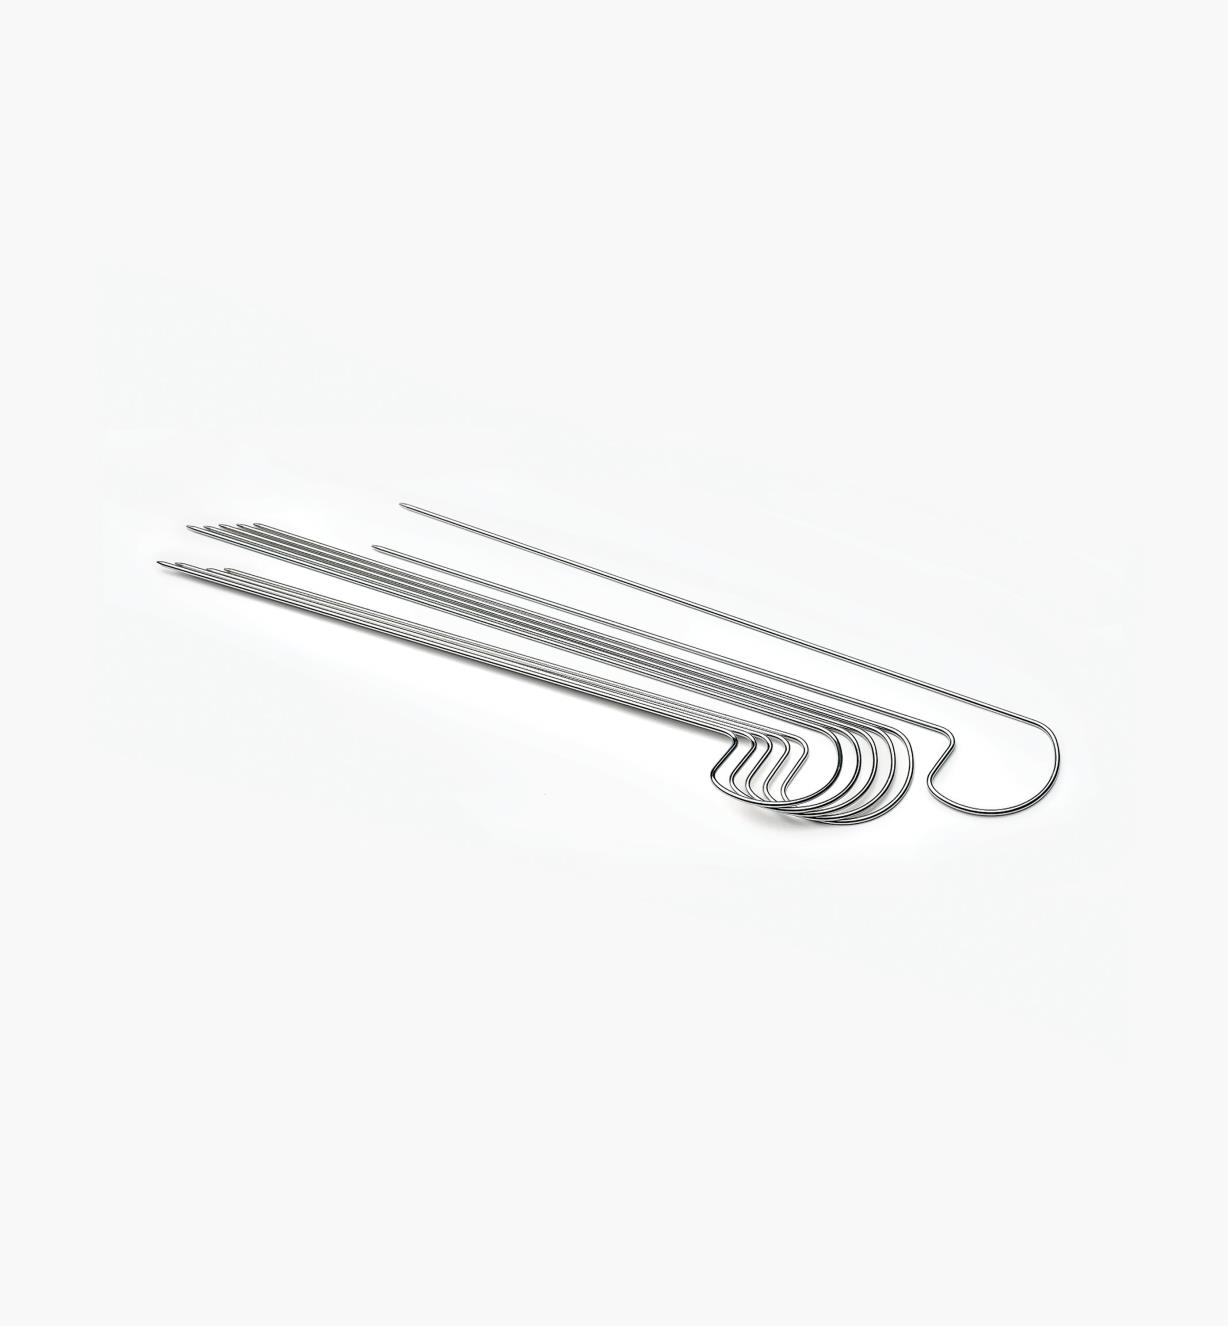 EV290 - Double-Prong Skewers, pkg. of 6